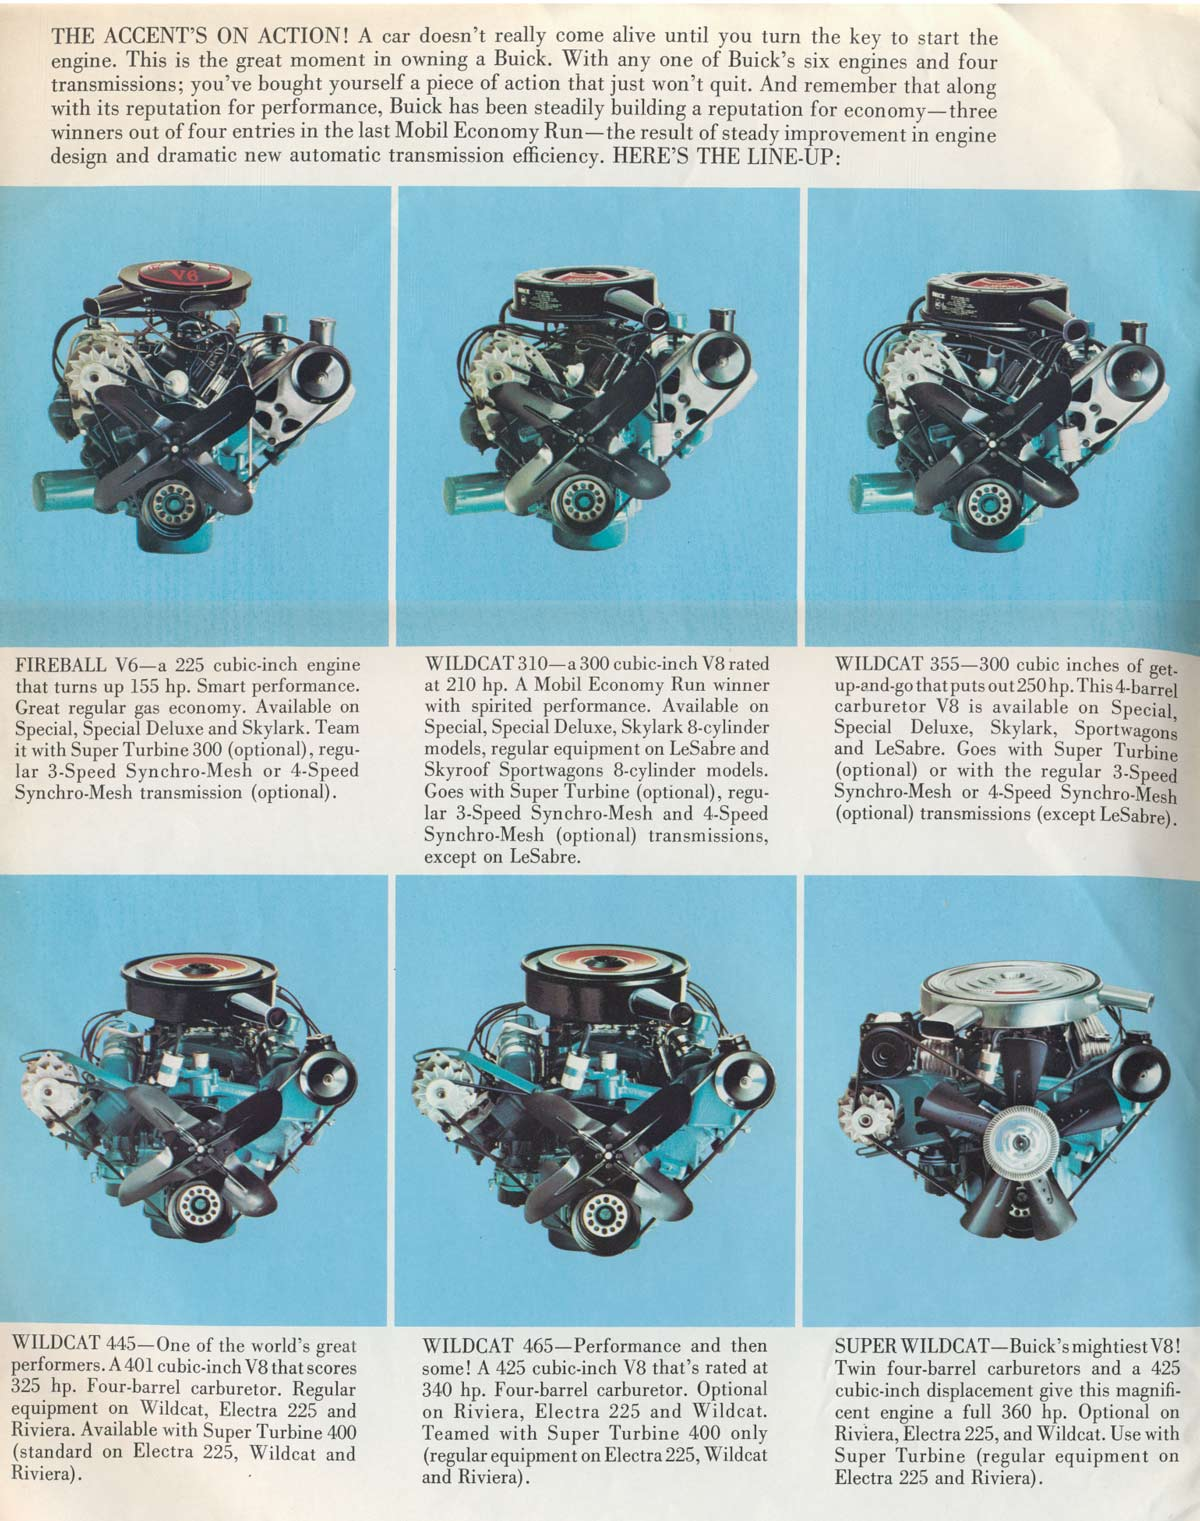 Automotive history the legendary buick nailhead v8 and the possible this is from a canadian brochure so the details in the text differ from what would be written in a us brochure nvjuhfo Images